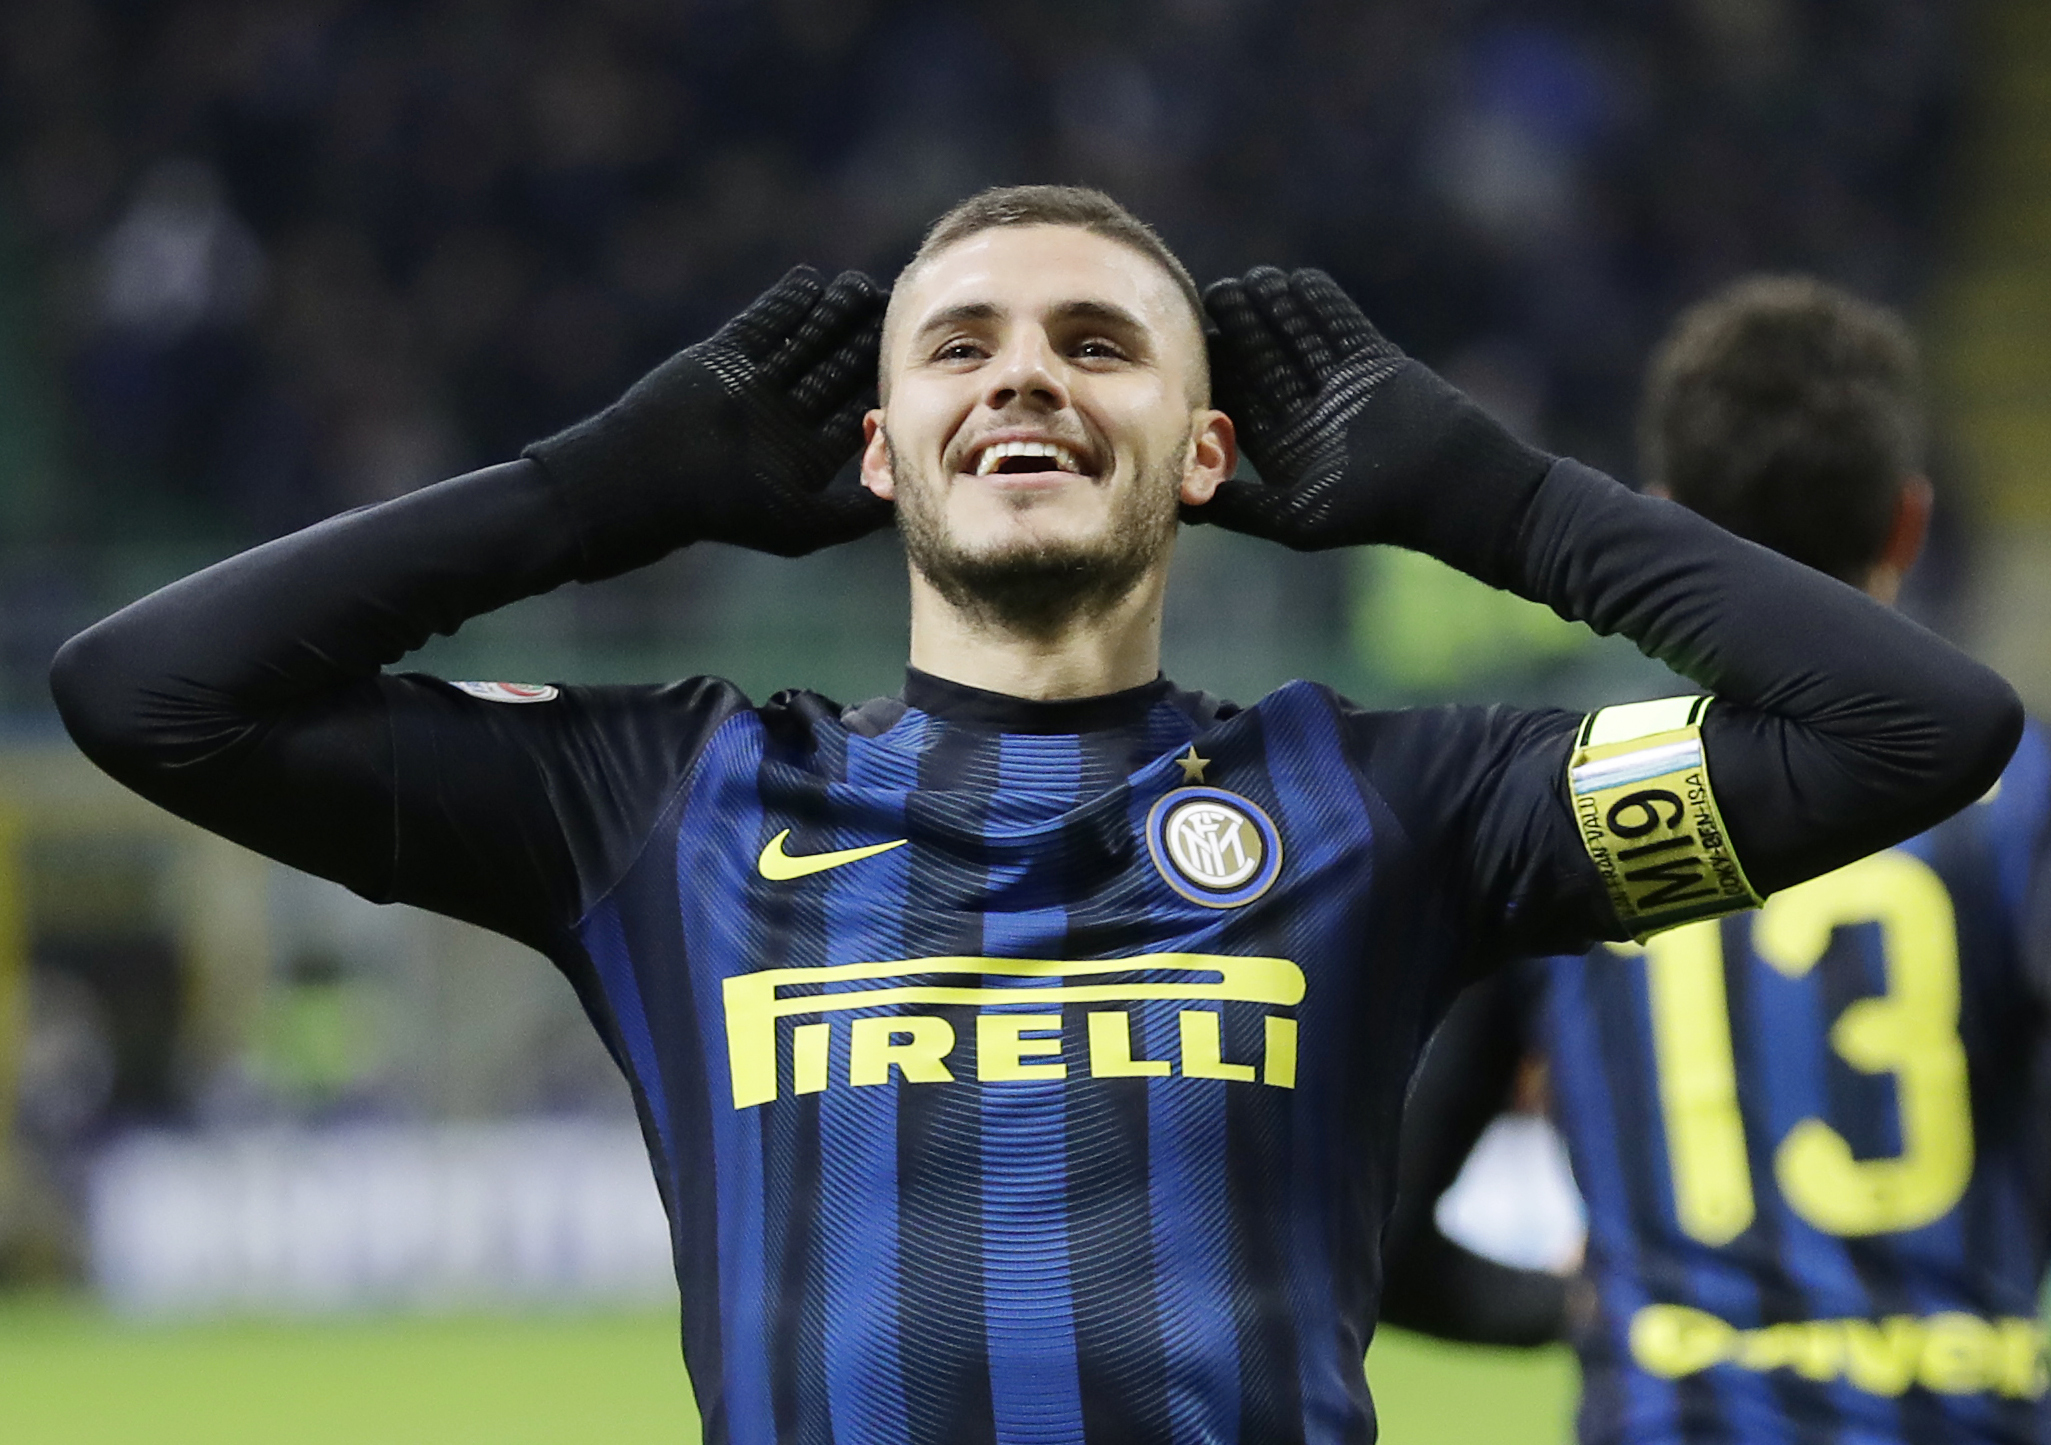 Inter Milan Captain Mauro Icardi Produces Great Gesture For Young